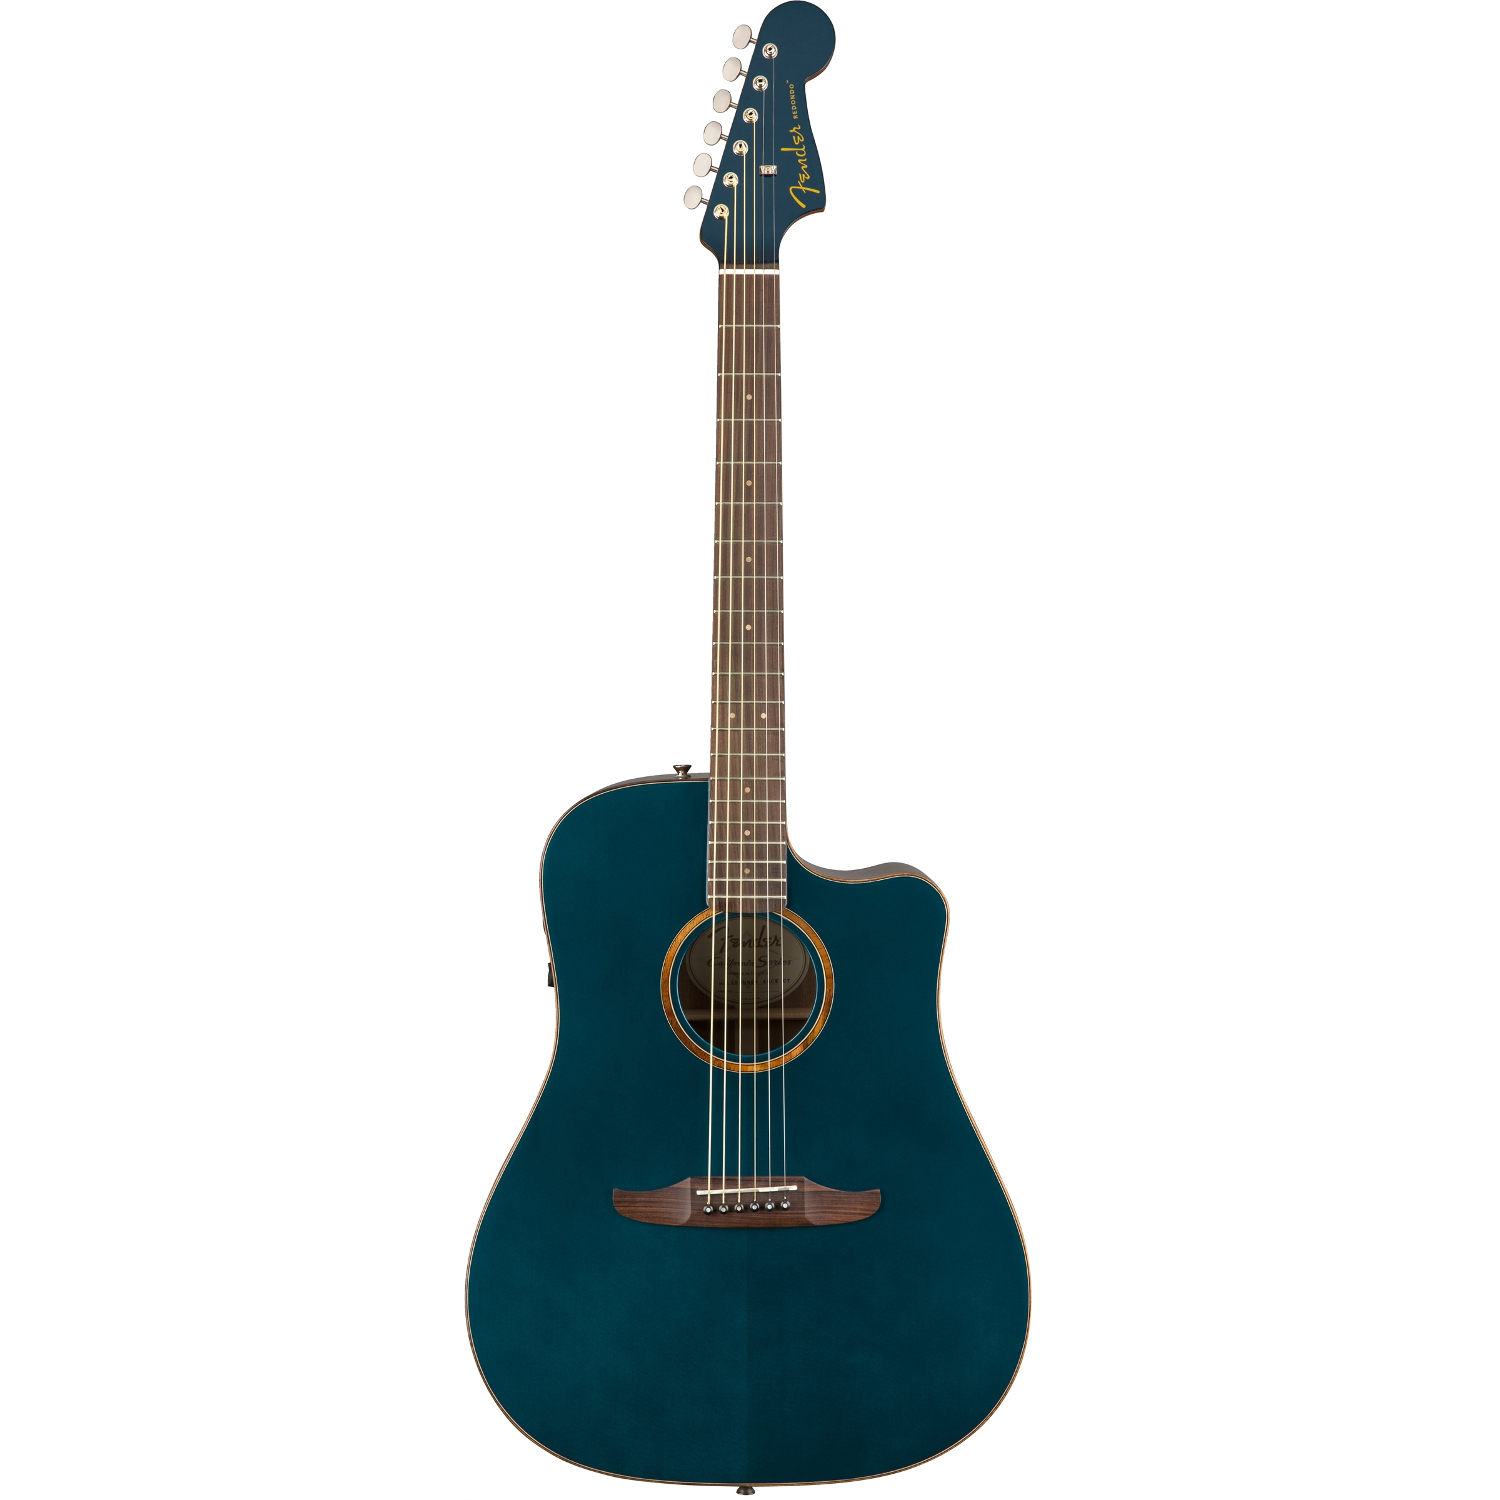 Fender Redondo Classic Cosmic Turquoise with gig bag